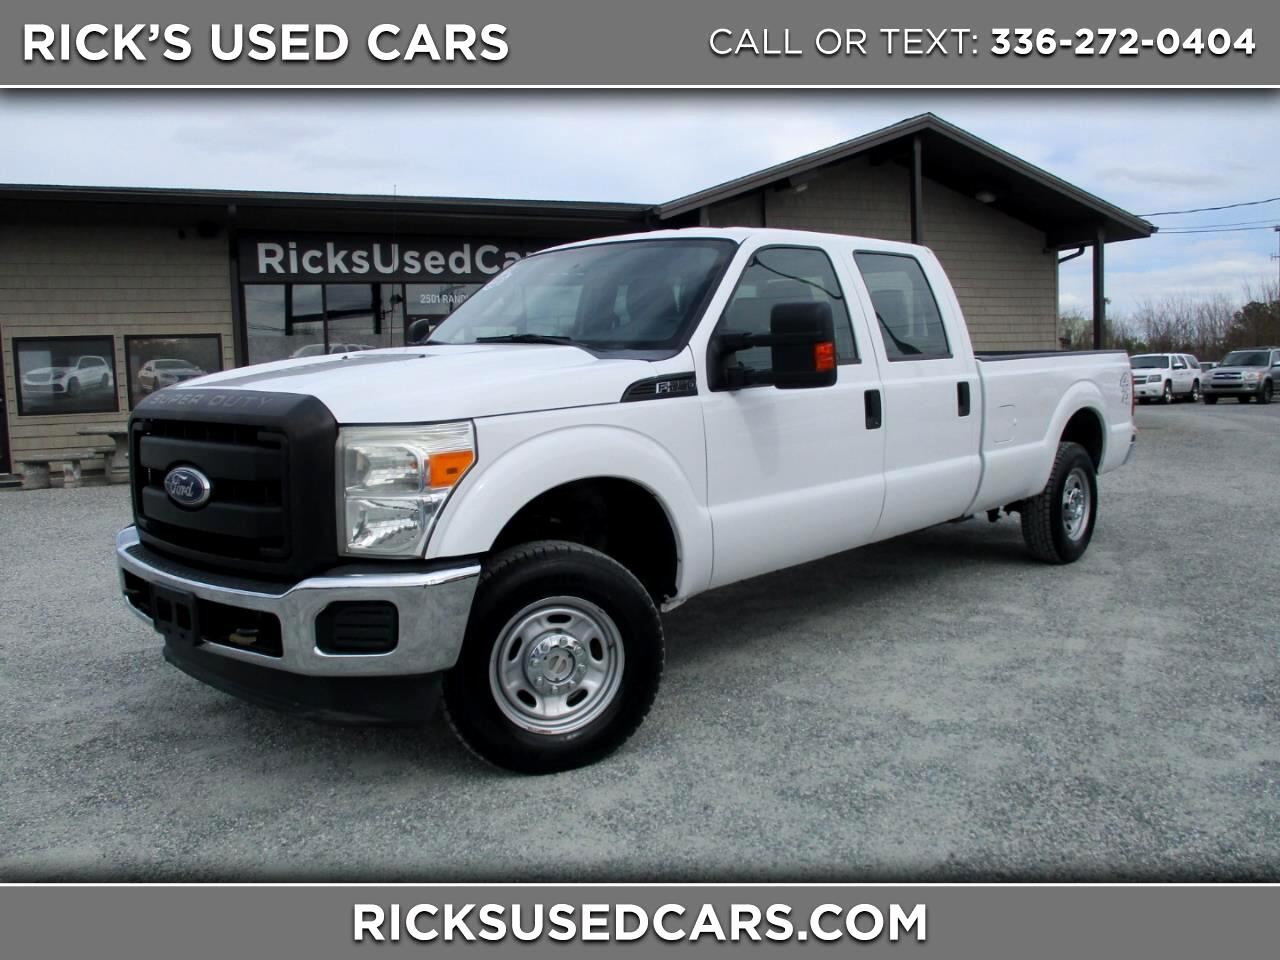 2011 Ford F-250 HD Crew Cab XL 4WD